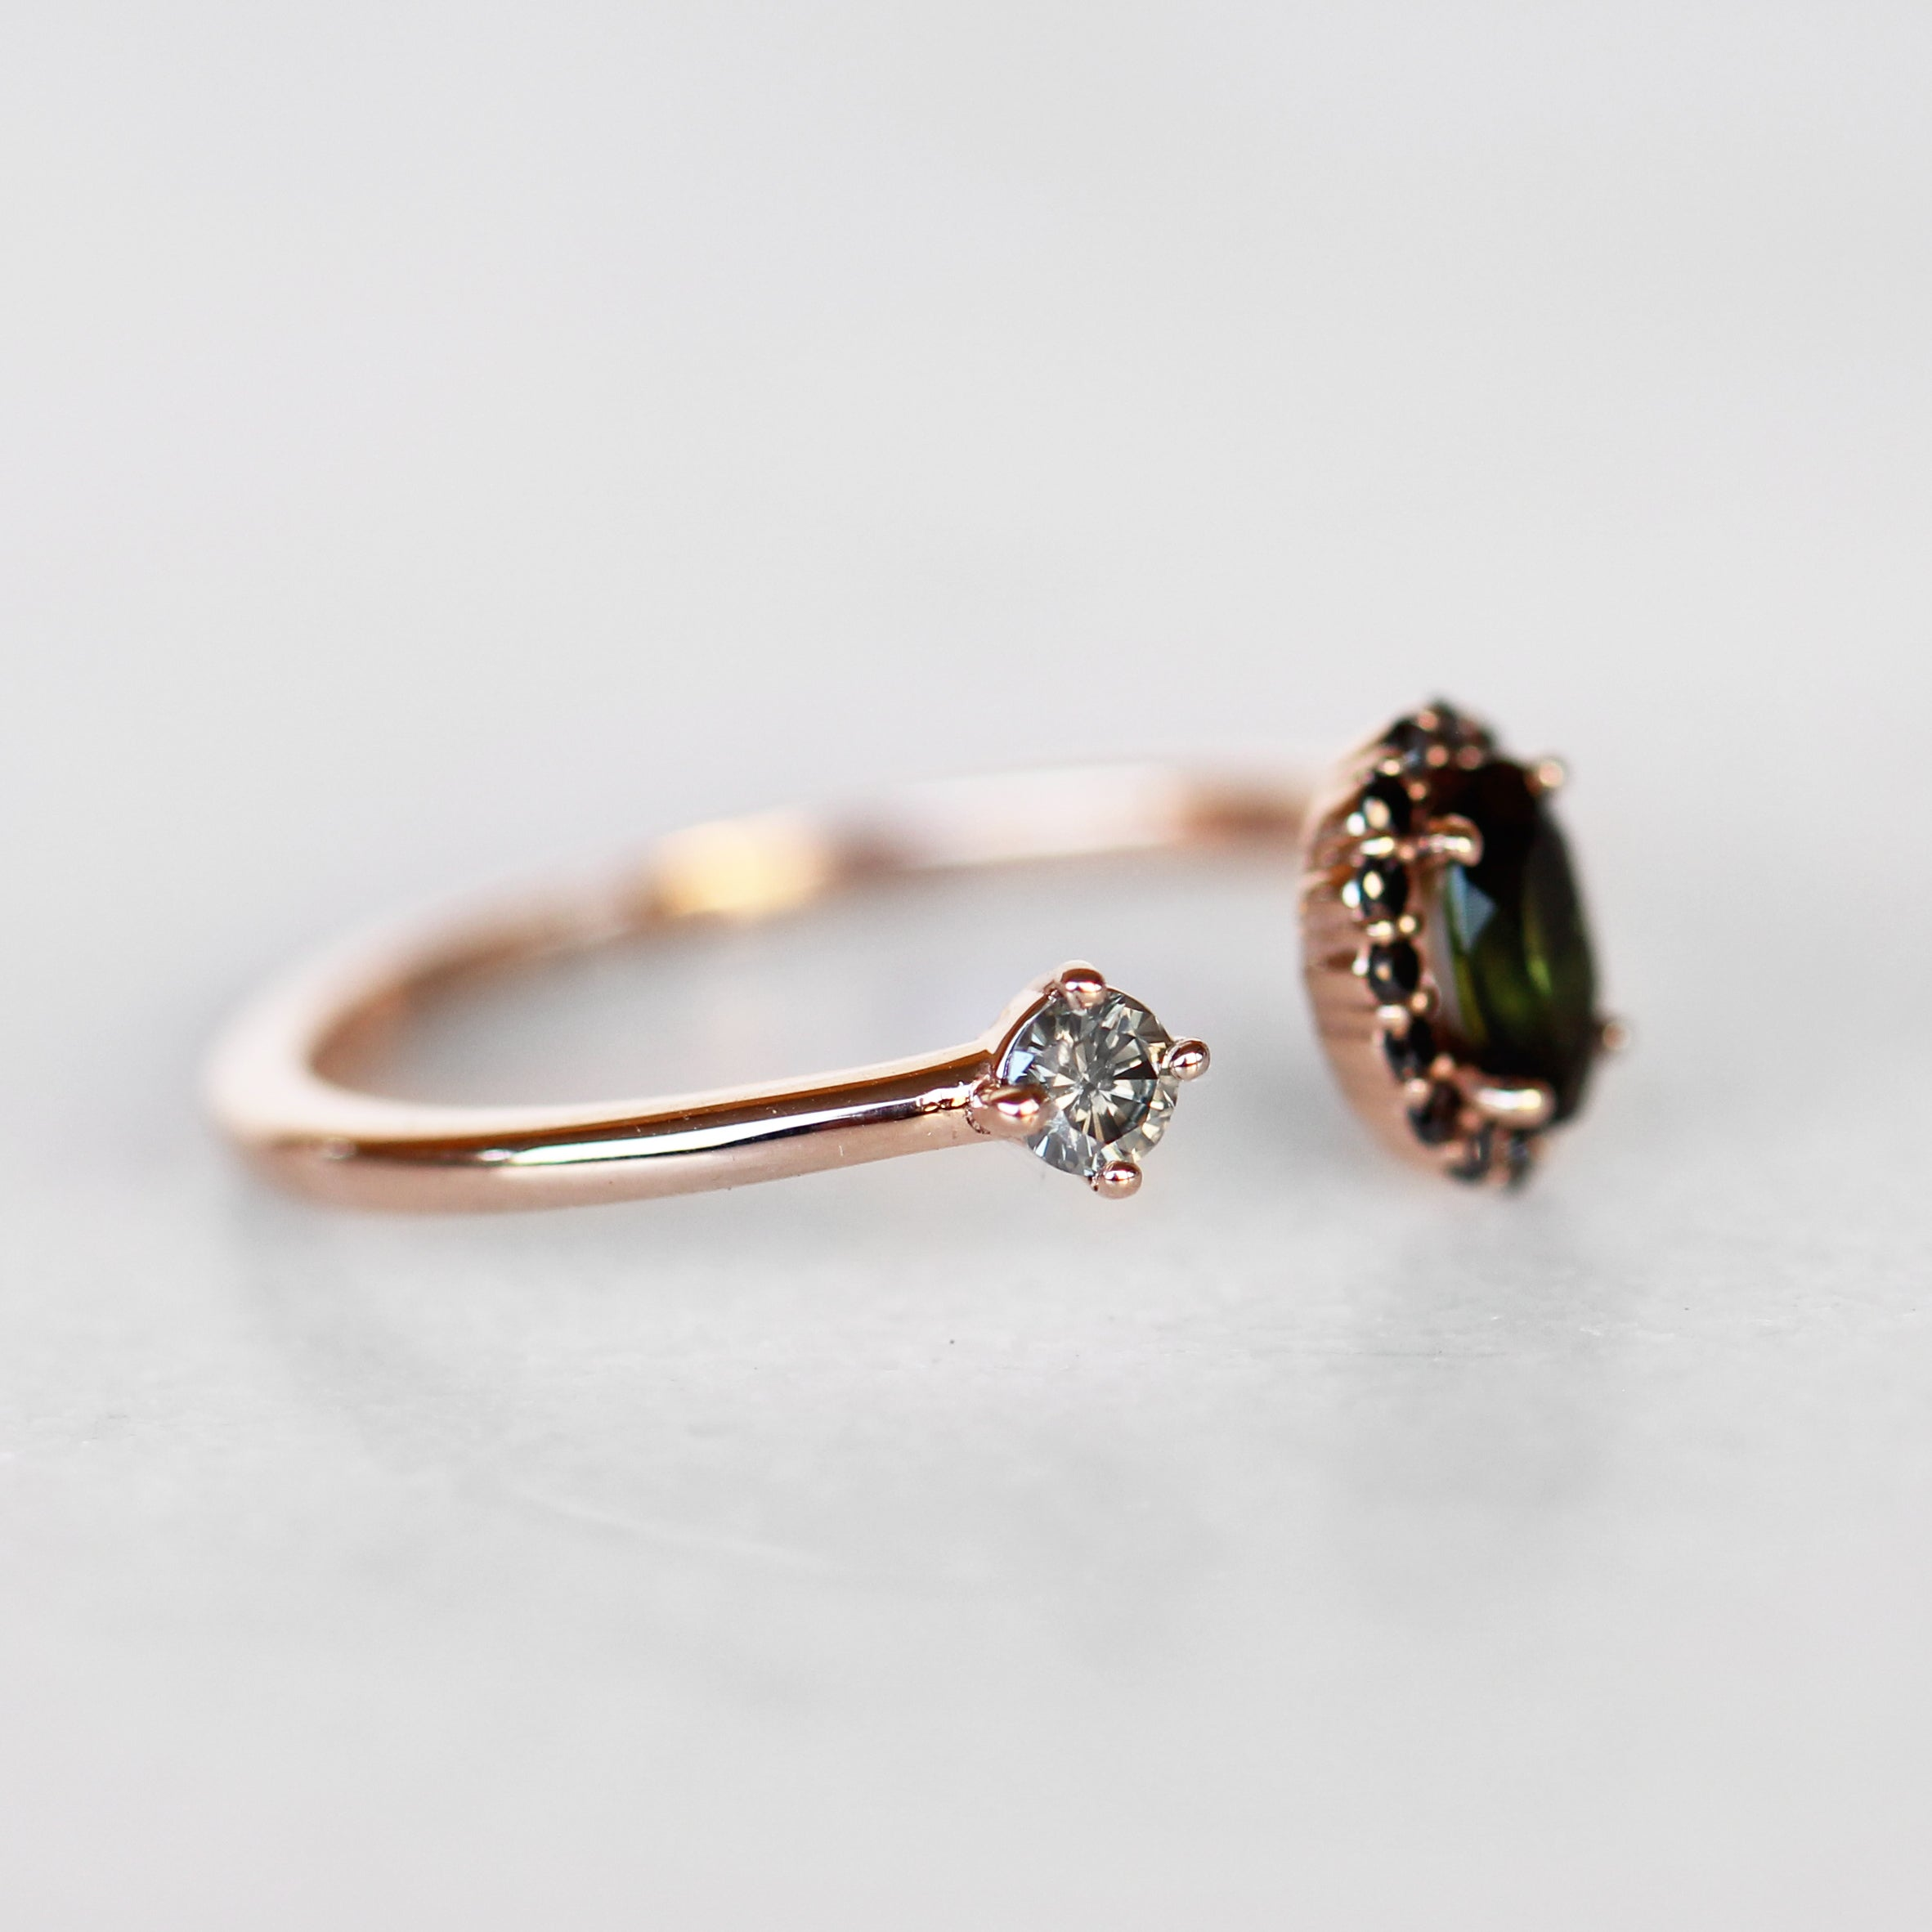 Celeste Ring with Oval Tourmaline and Diamond Accent in 10k Rose Gold - Ready to Size and Ship - Celestial Diamonds ® by Midwinter Co.